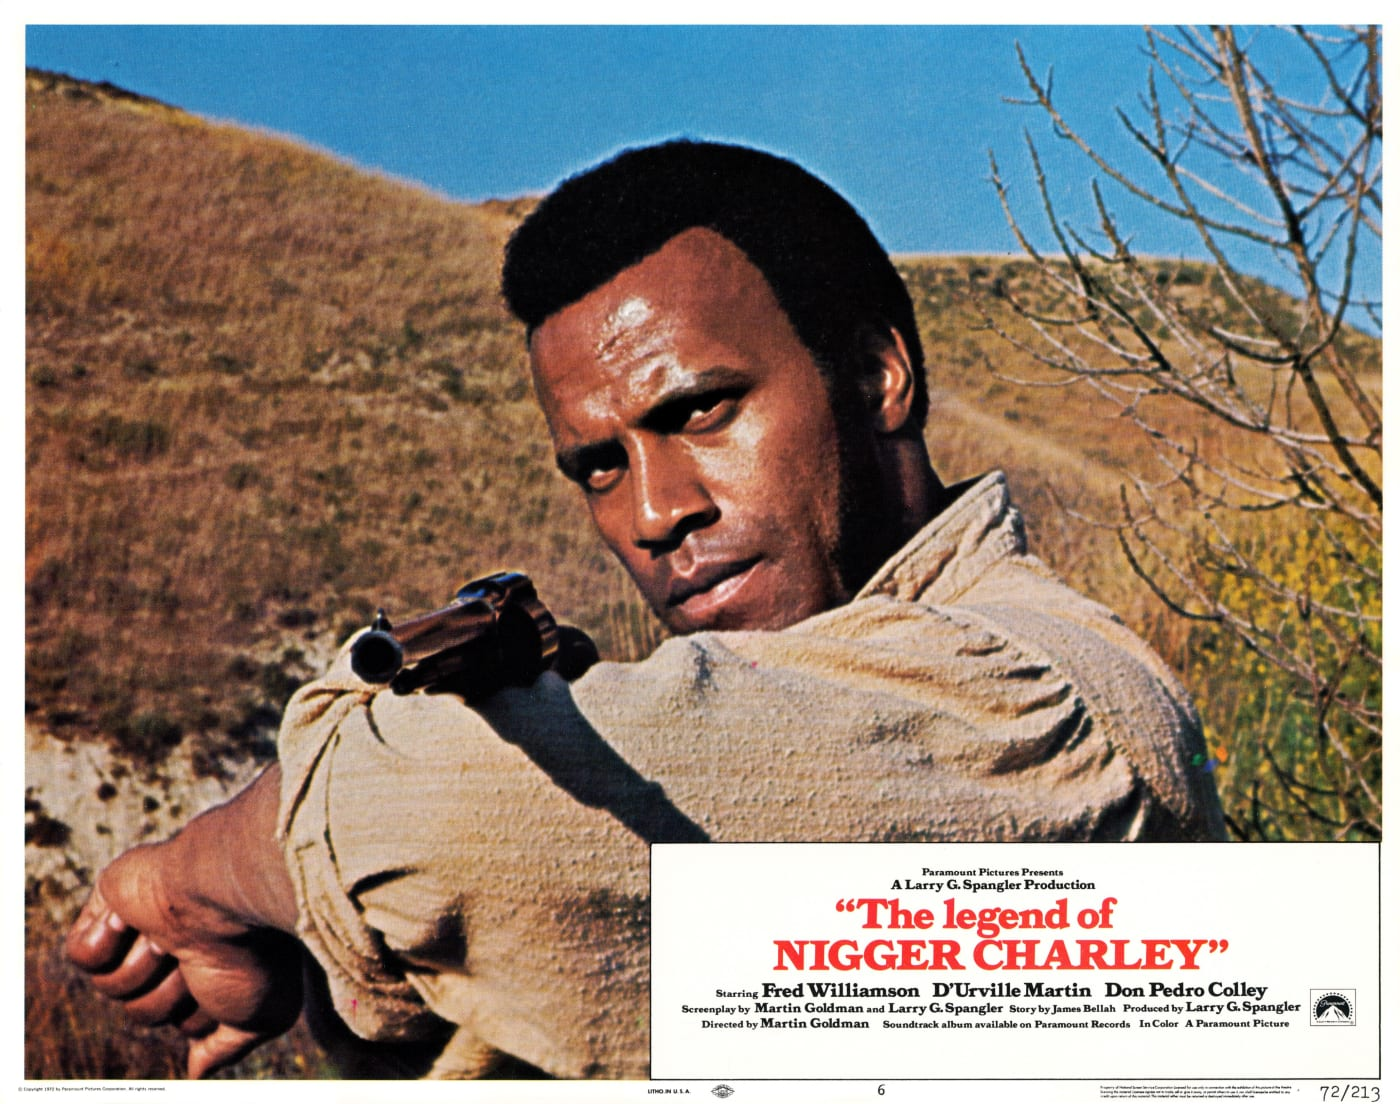 This is the lobby card from The Legend of Nigger Charley.